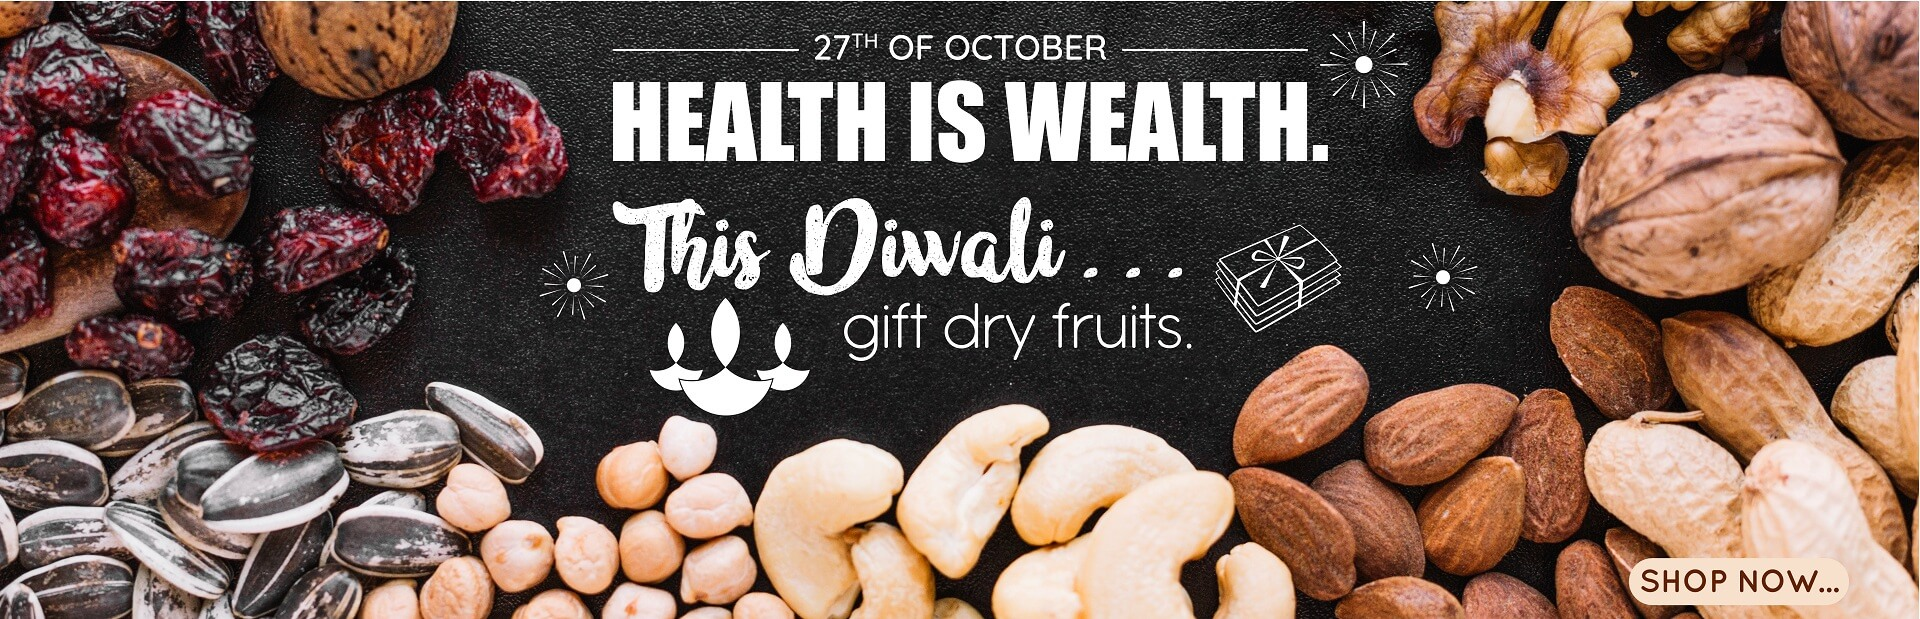 Gift DryFruits To Your Loved Ones This Diwali